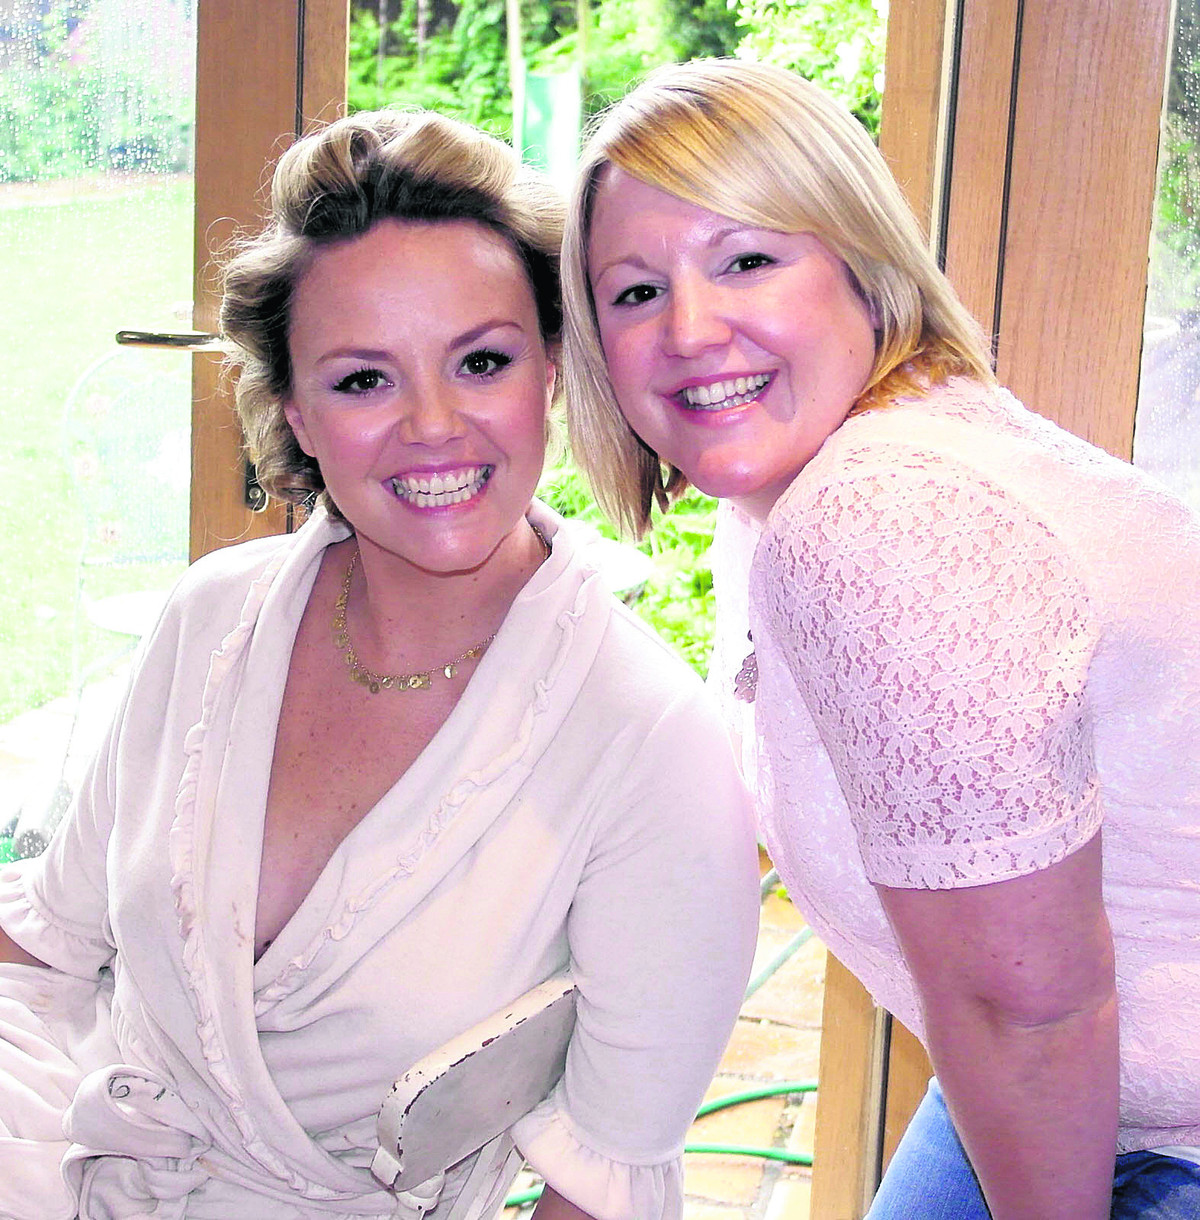 Stacey Johnson created a style fit for a star when she worked on the hair of Charlie Brooks of EastEnders